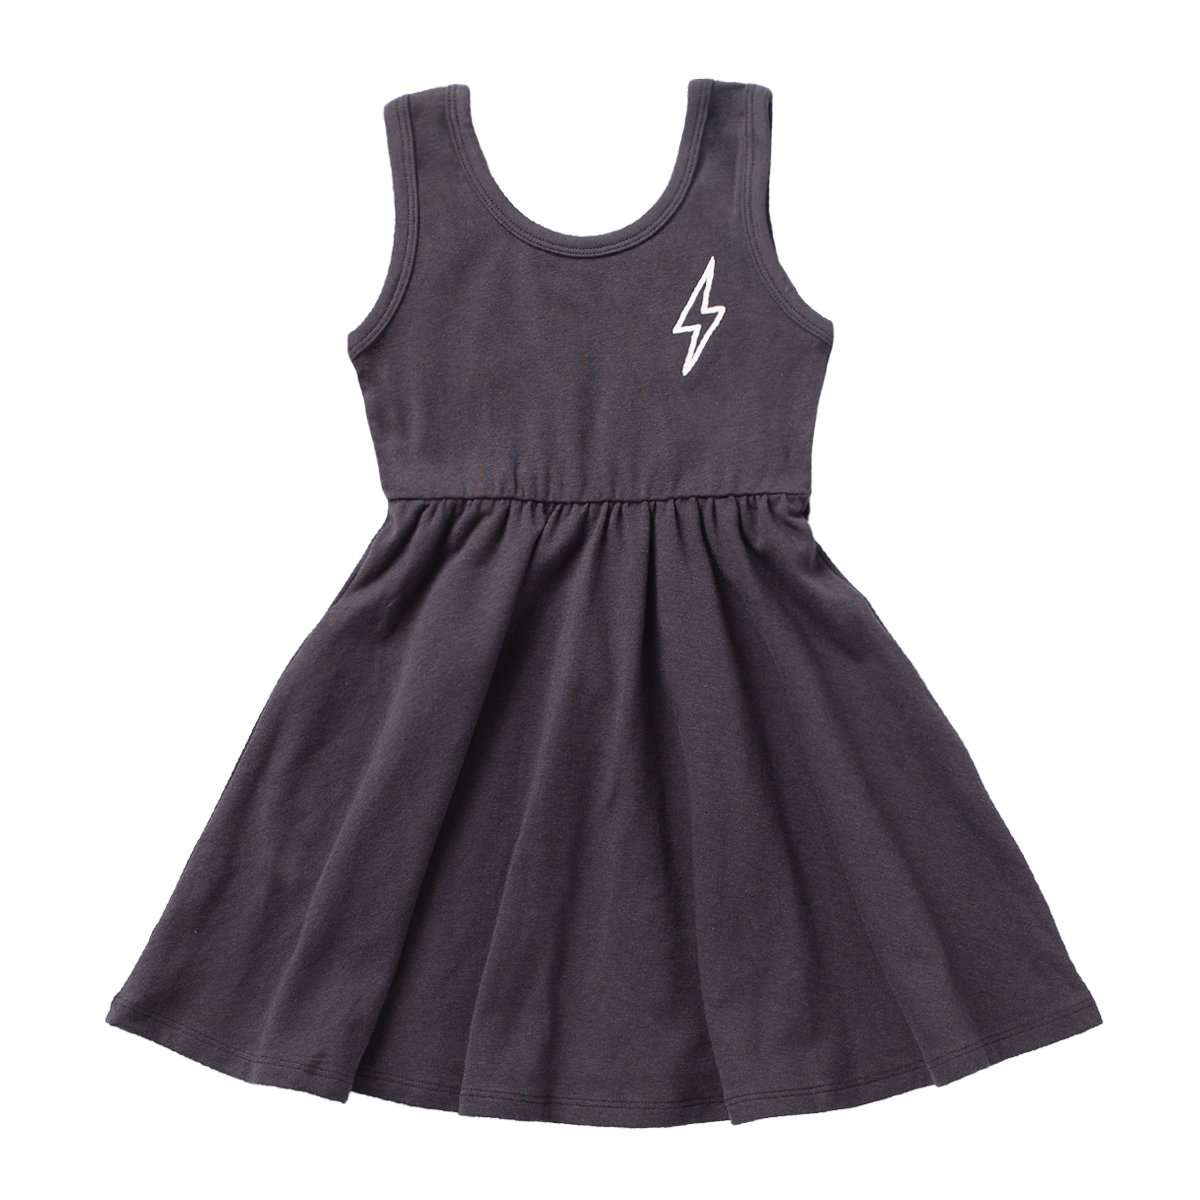 Image of Tank Swing Dress - 'Lightning' - Asphalt